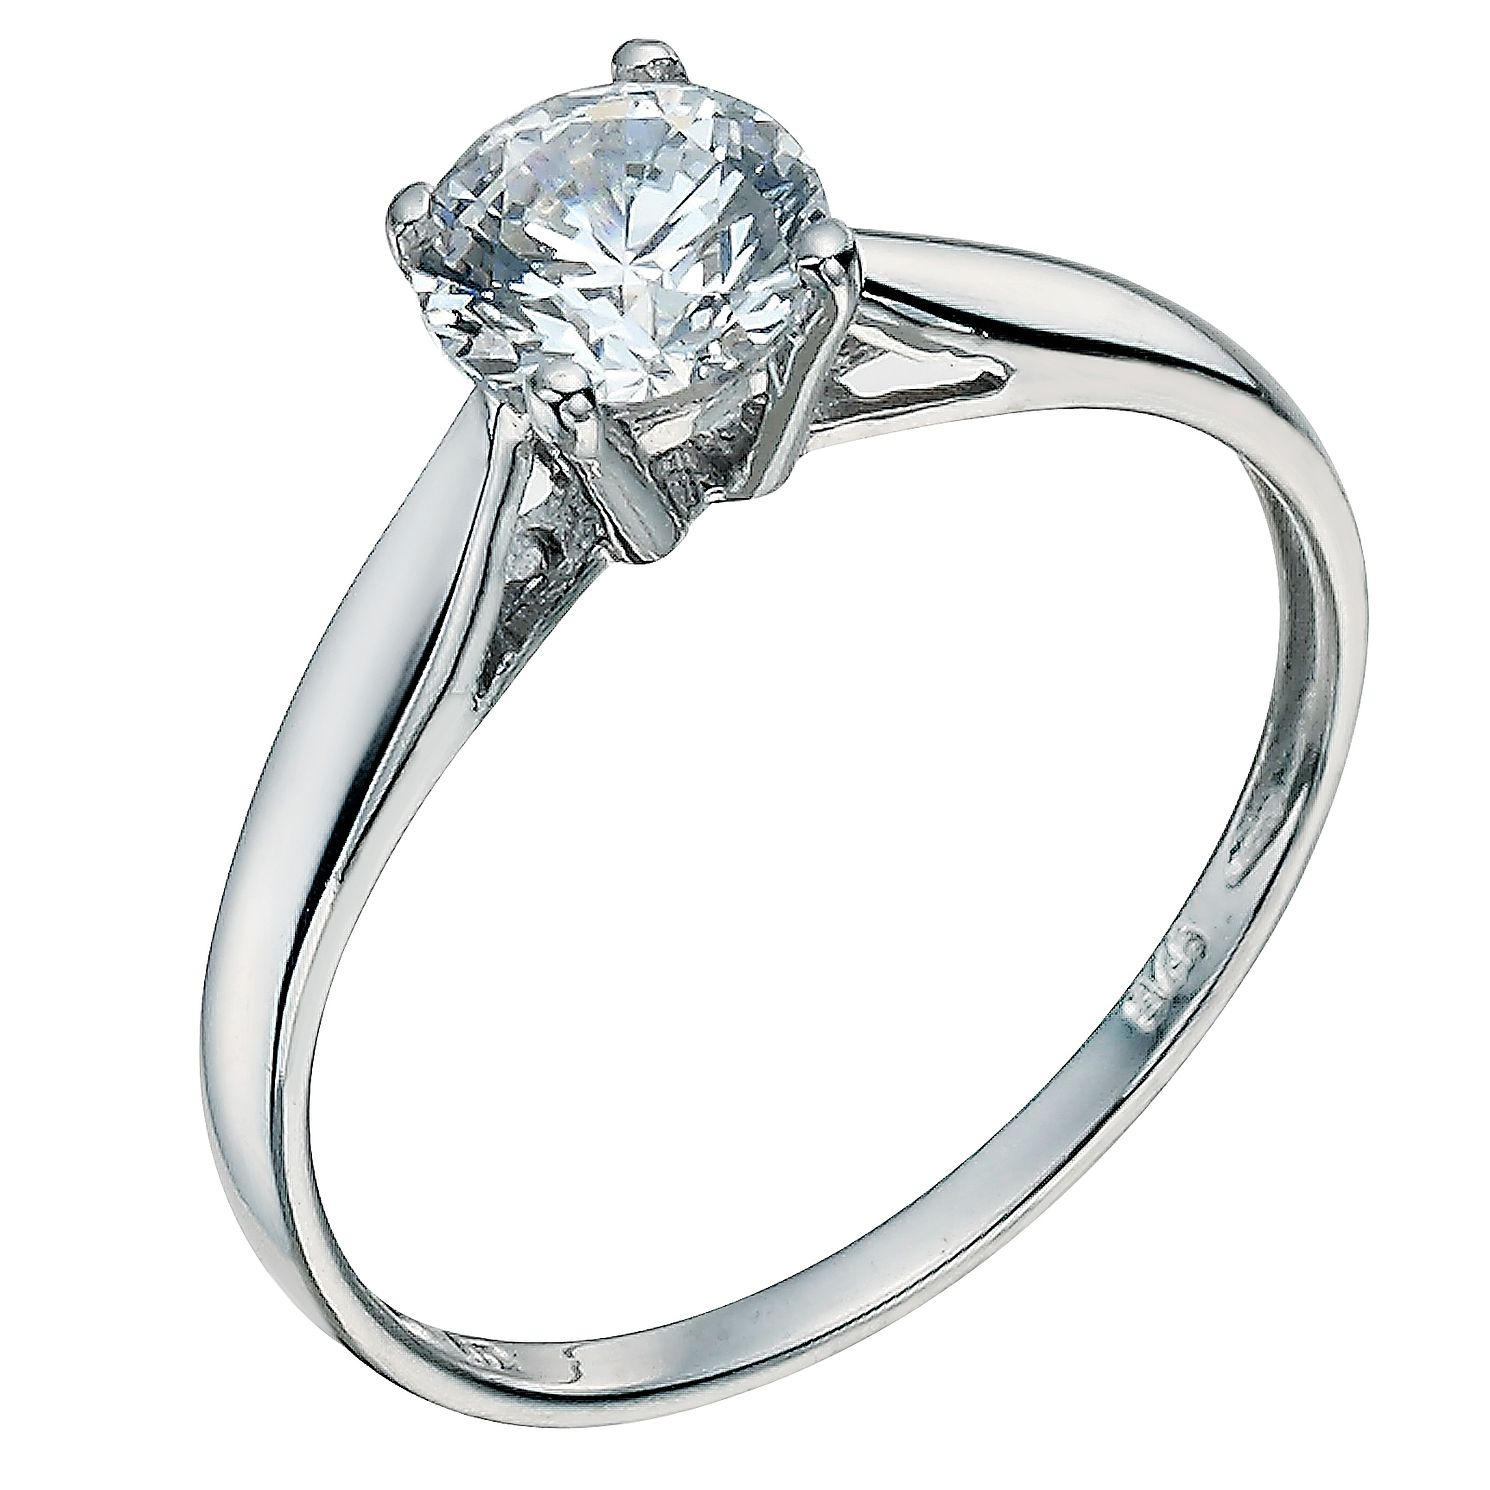 ring solitaire product jewellery charm white diamond glacier fire gold